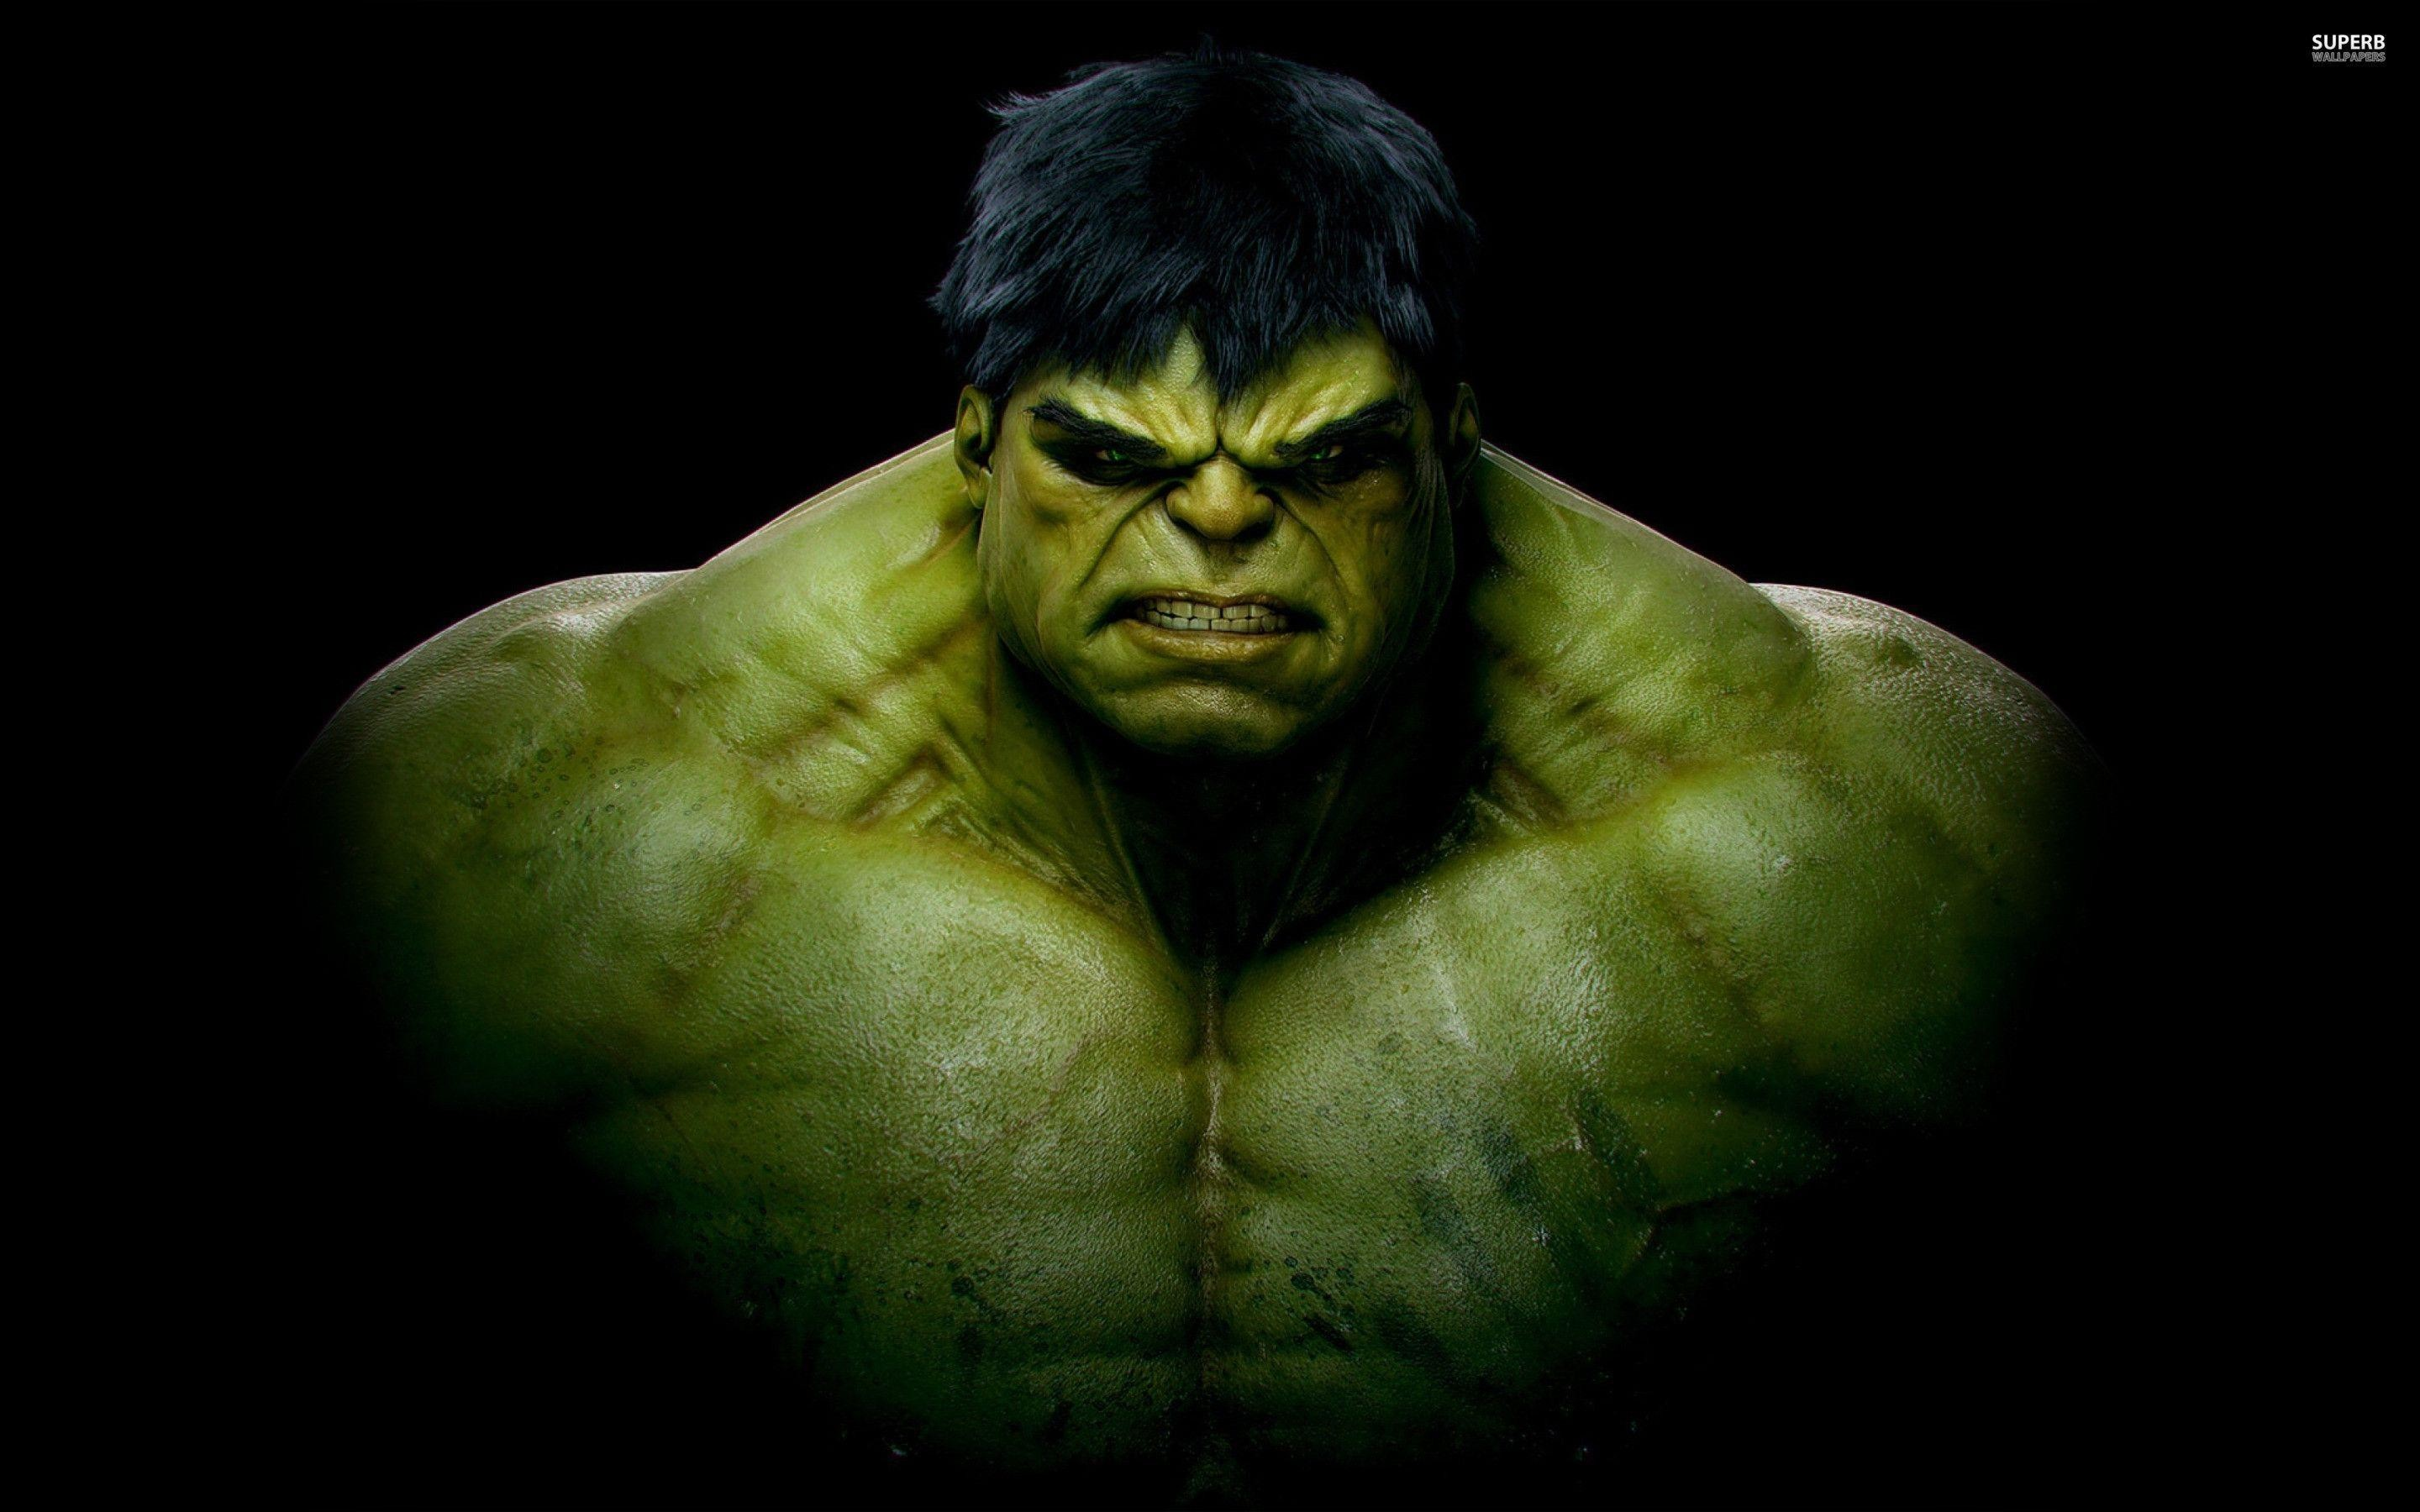 Hulk HD Wallpapers 1080p 73 images 2880x1800